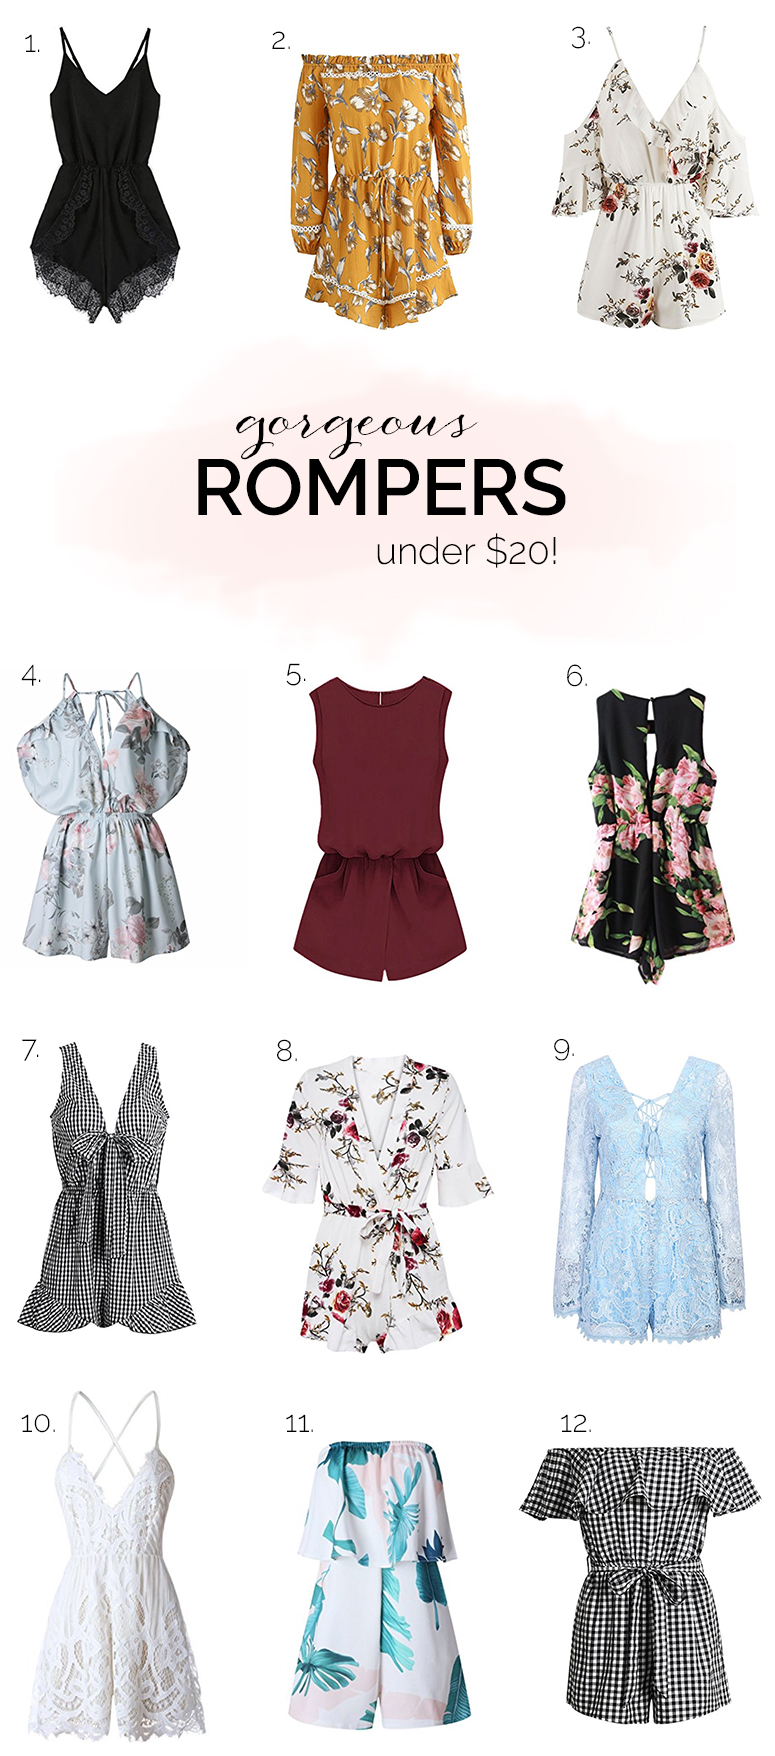 Gorgeous affordable rompers under $20 from Amazon